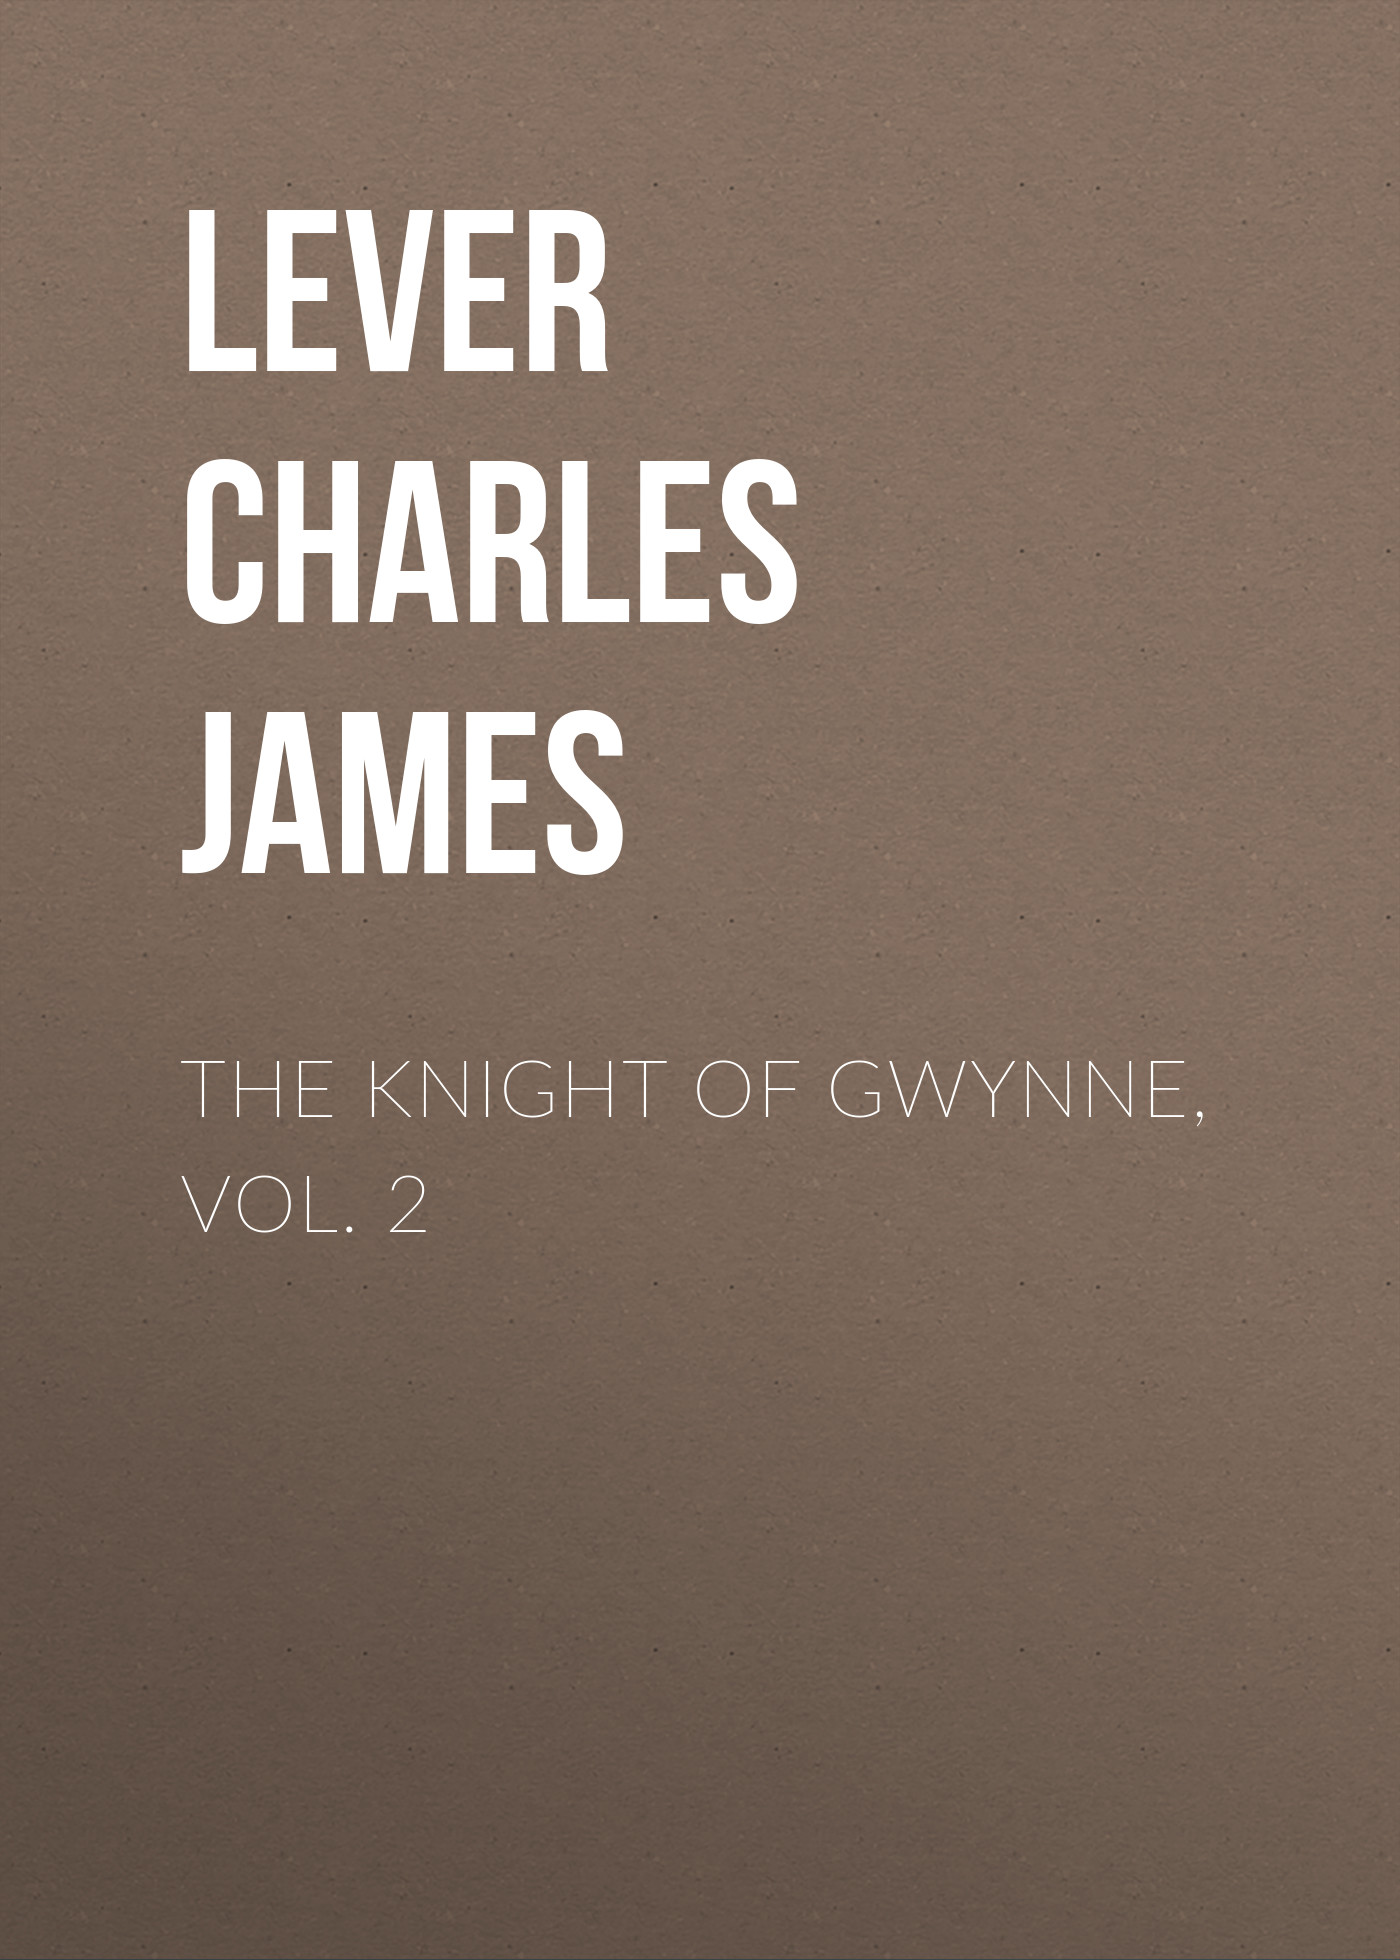 лучшая цена Lever Charles James The Knight Of Gwynne, Vol. 2